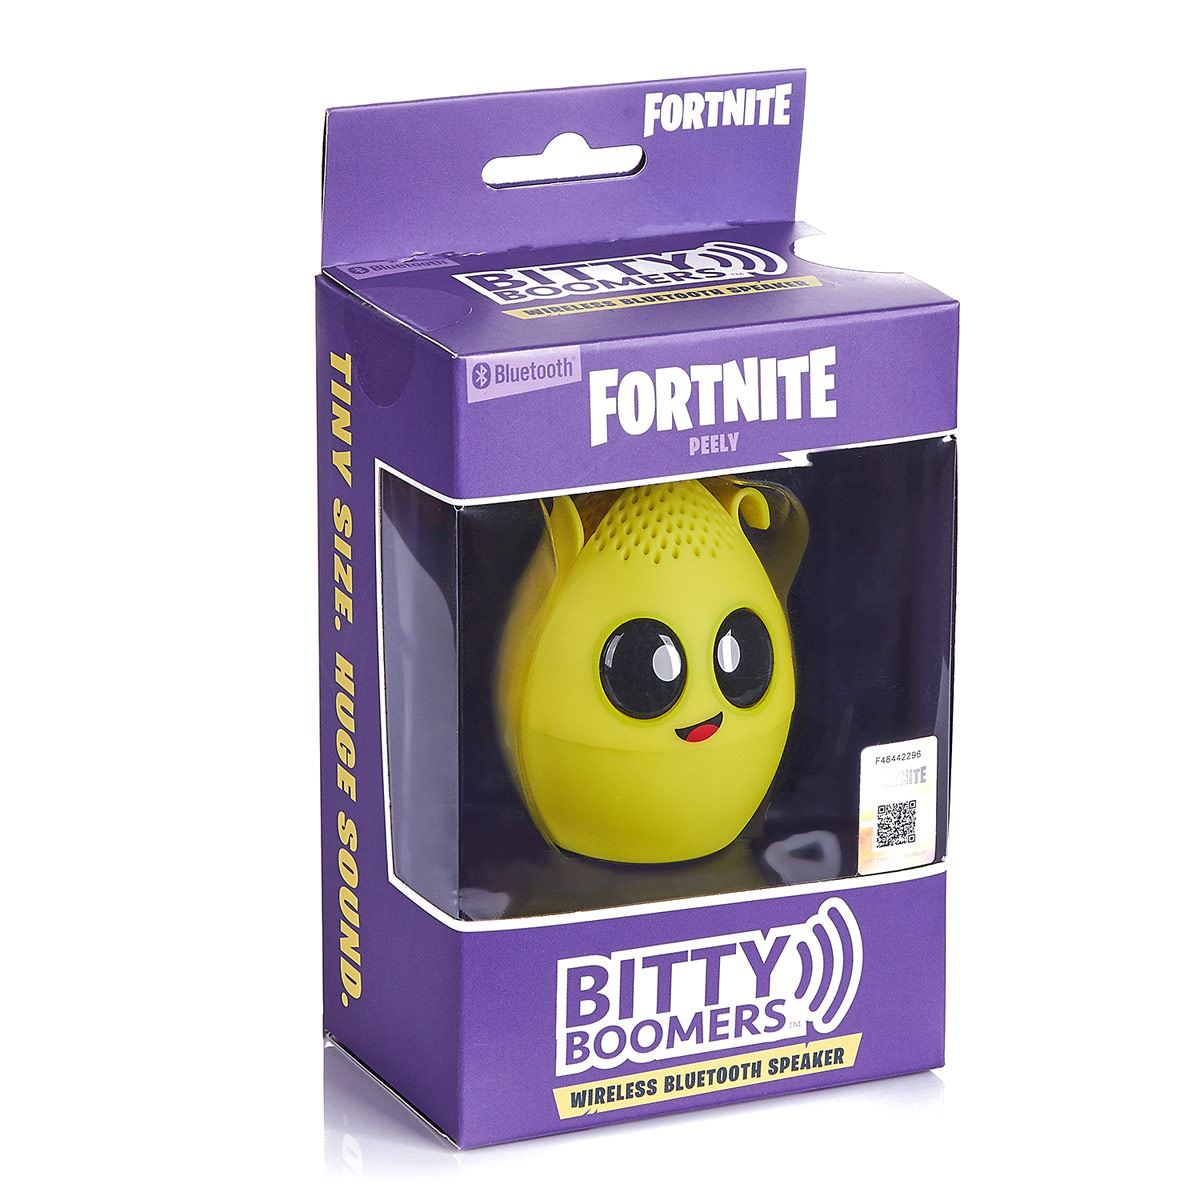 Bocina Bitty Boomers Bluetooth Fortnite Peety